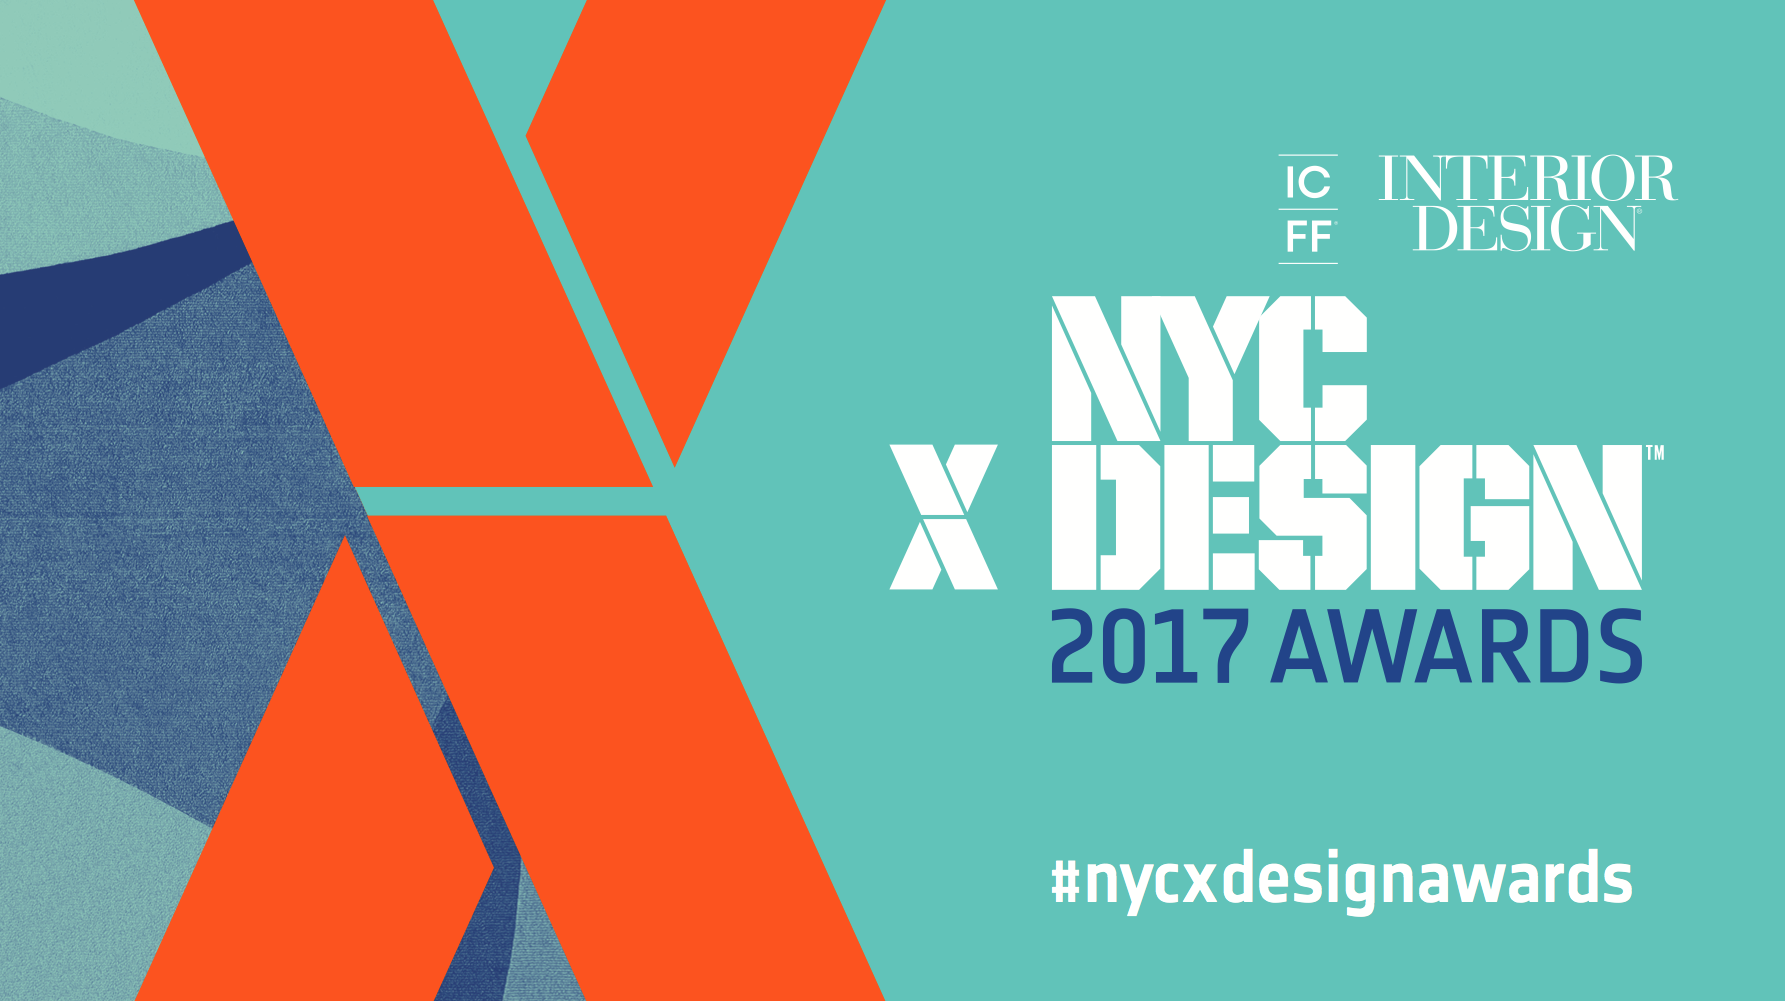 ICFF 2017: The Winners of 2017 NYCxDesign Awards ICFF 2017: The Winners of 2017 NYCxDesign Awardsnycxdesignawards2017